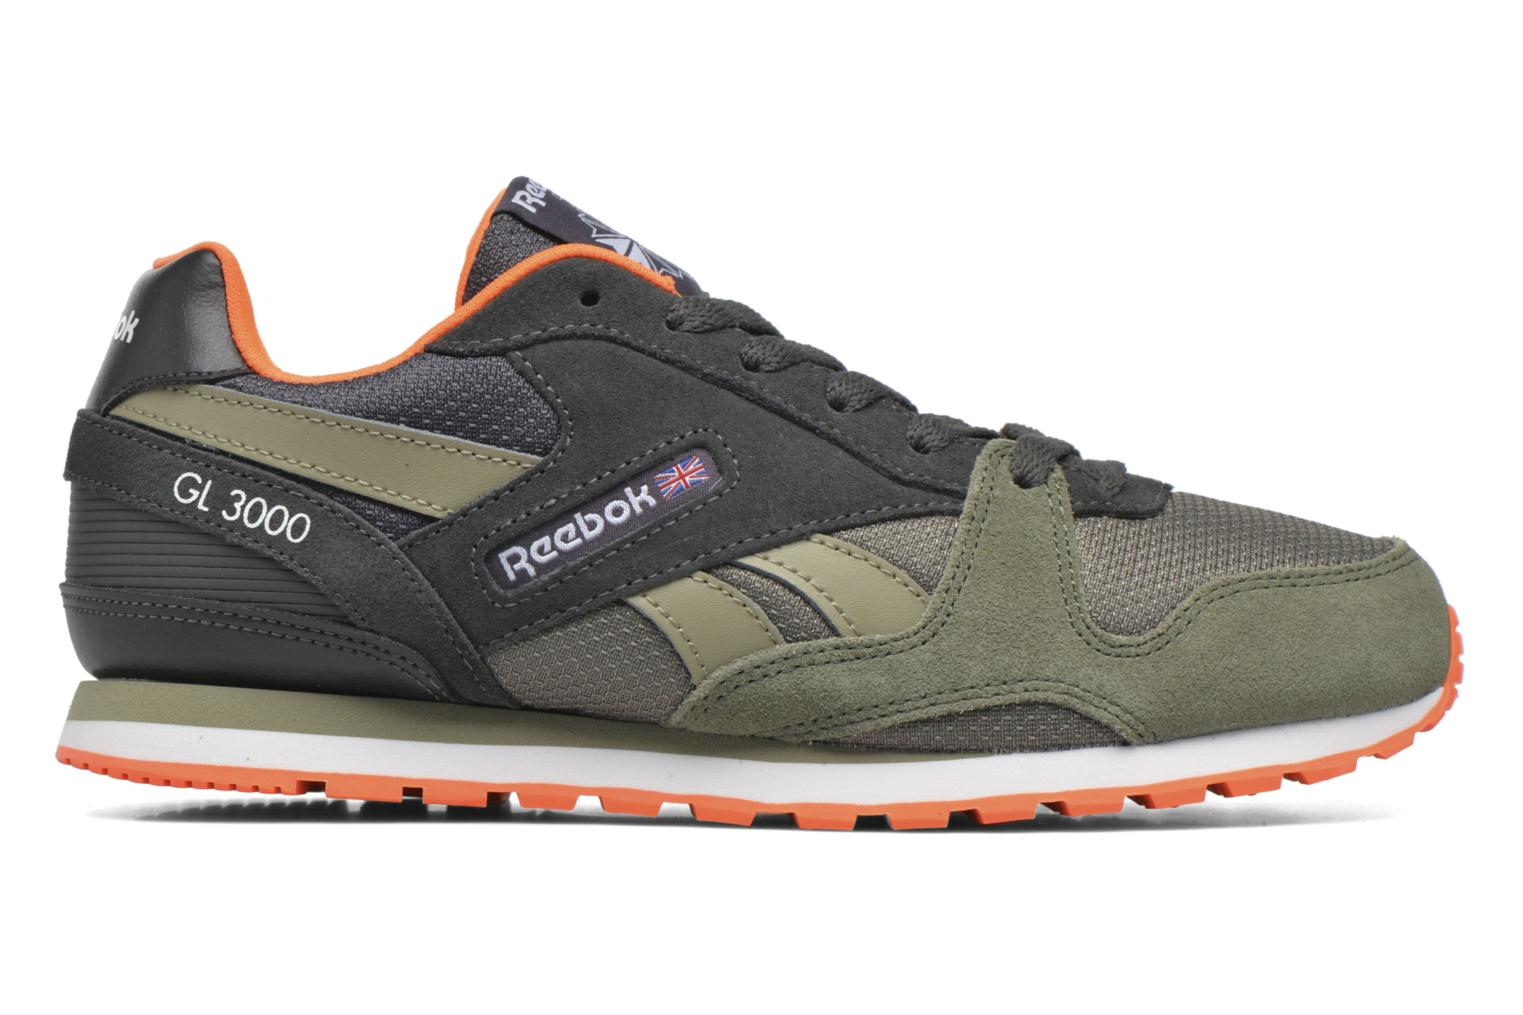 Gl 3000 Sp Hunter Green/Coal/Orange/Khaki/White